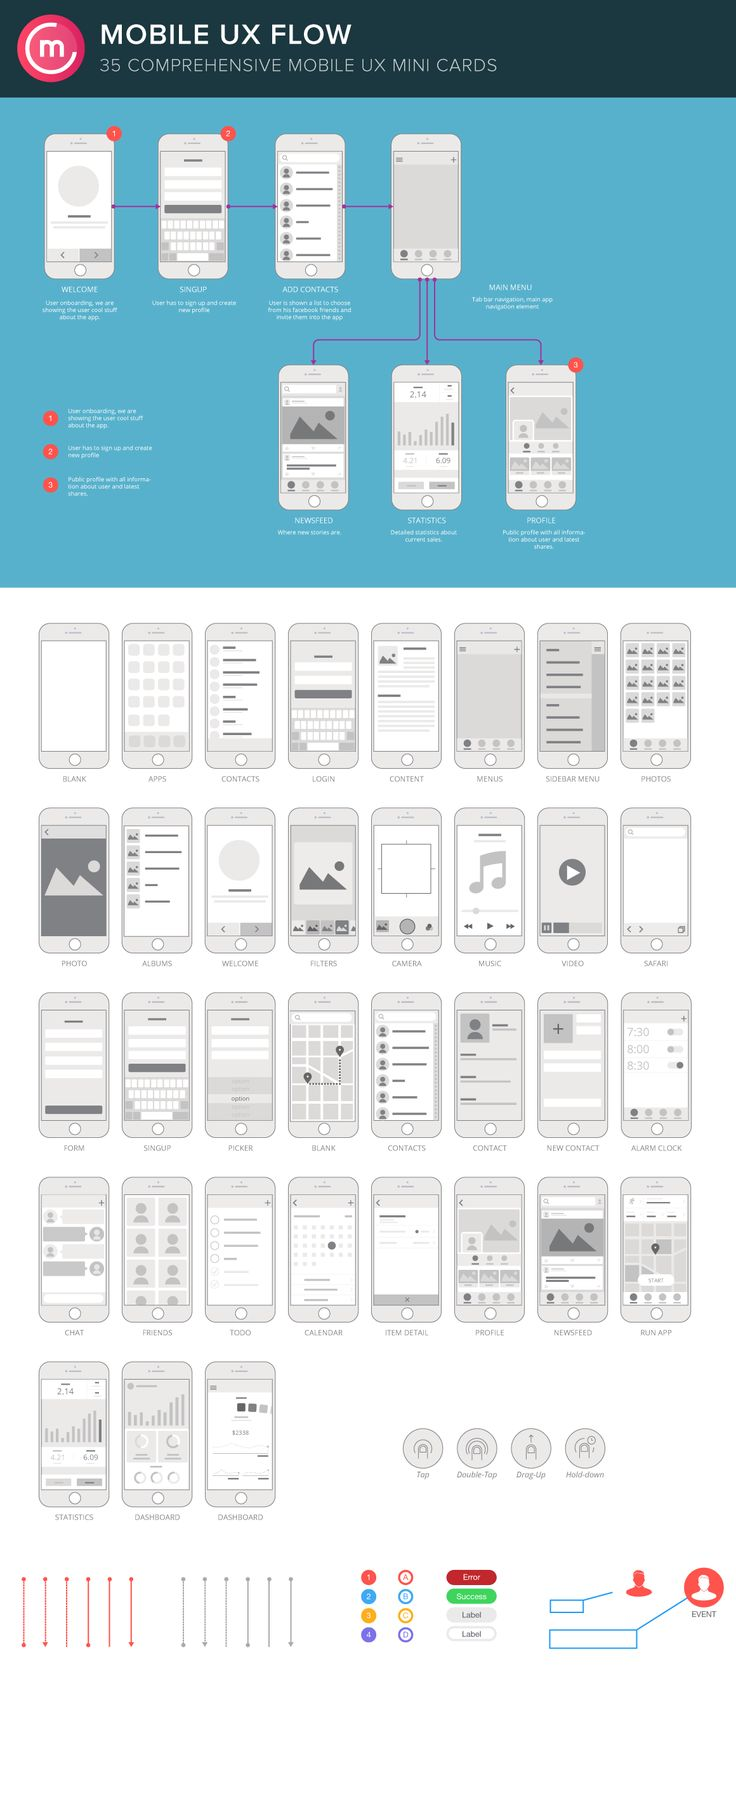 Mobile UX Flowchart Screens/ Sitemap by Codemotion Design Kits on @creativemarket